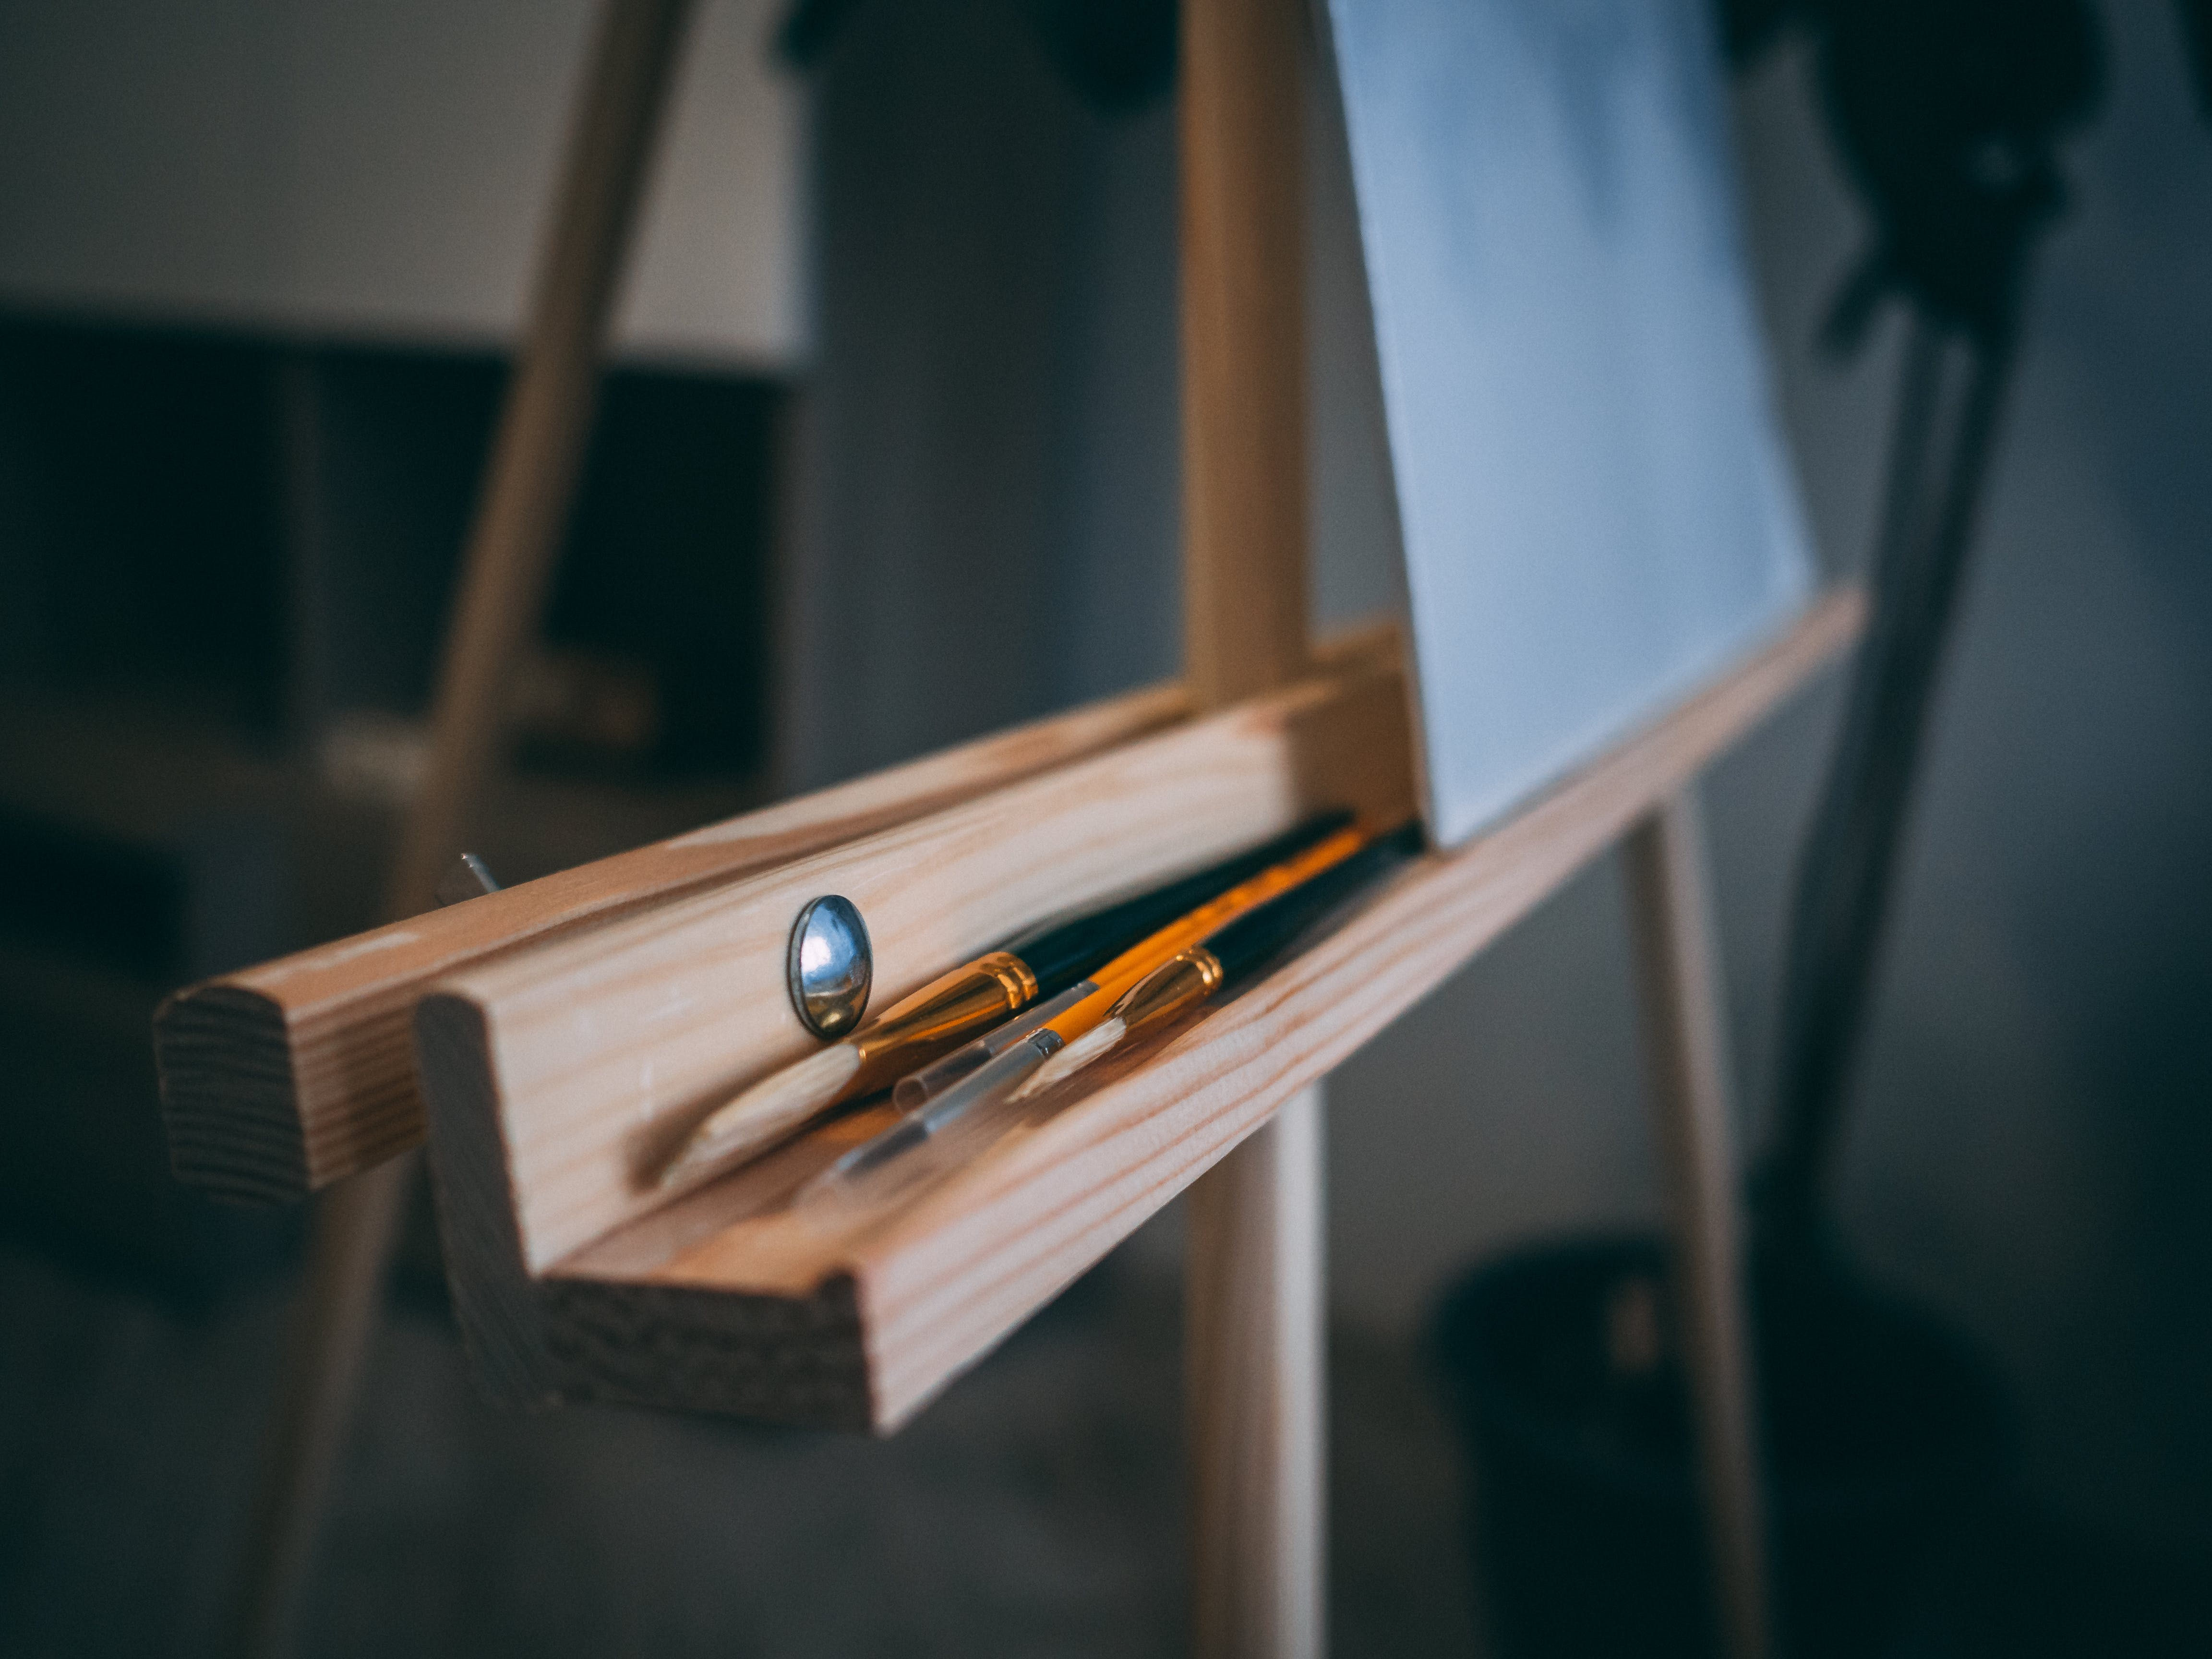 Brown Easel With Pens and Brushes